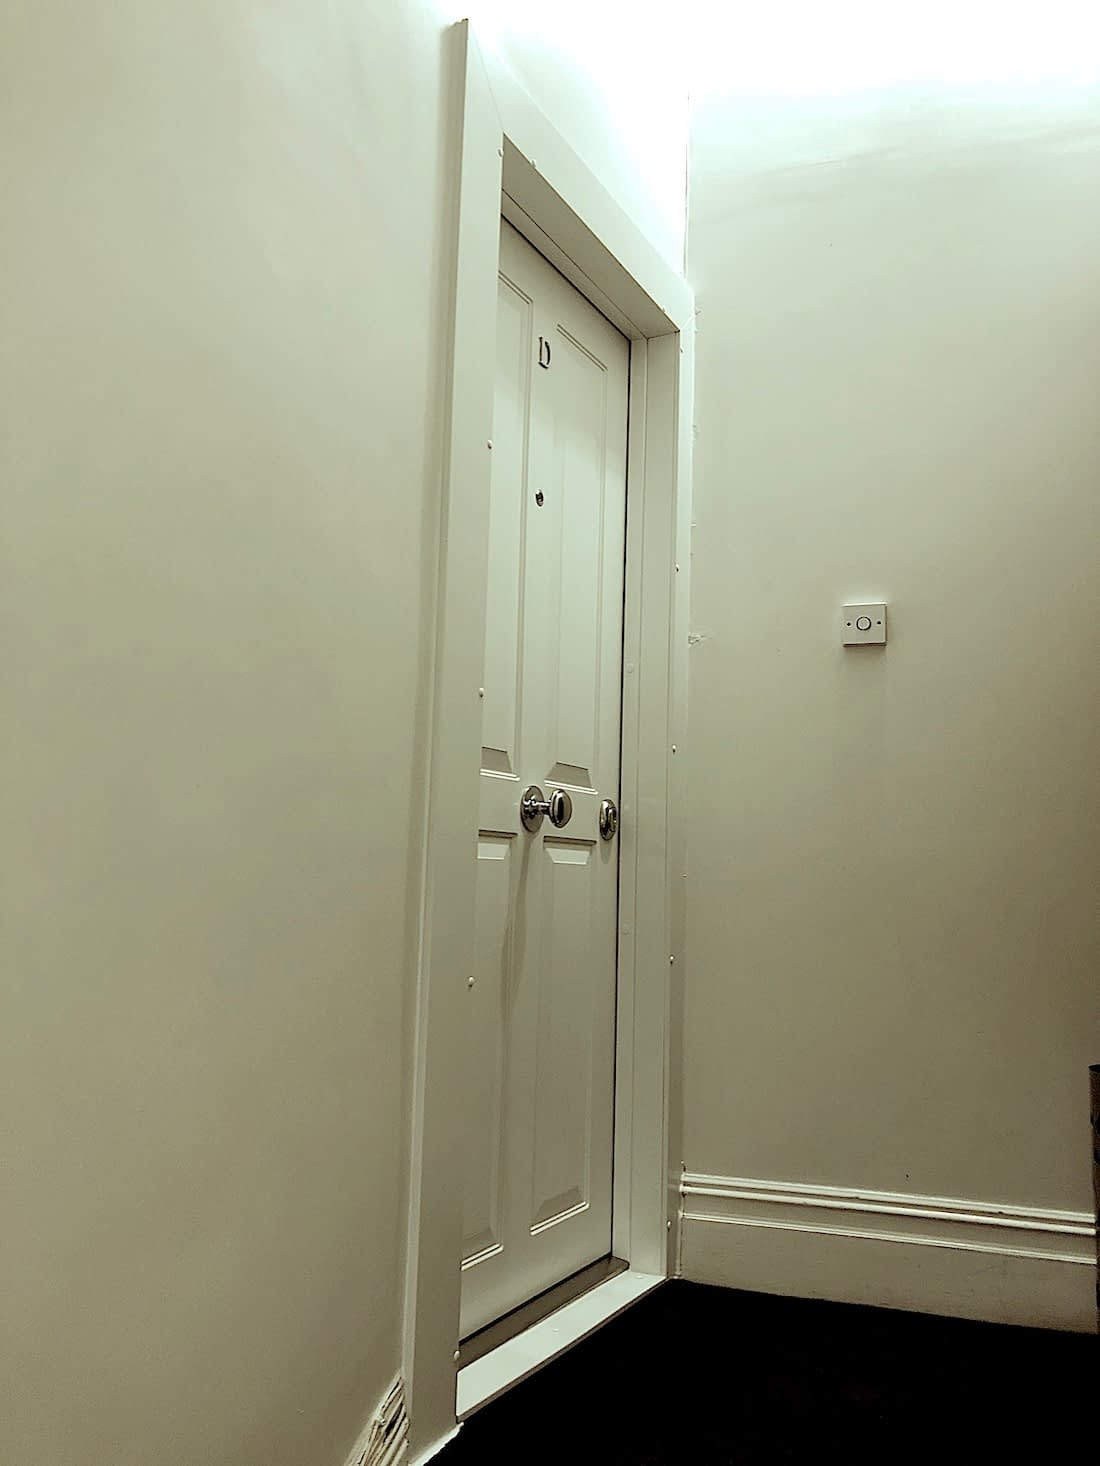 Security doors in a house